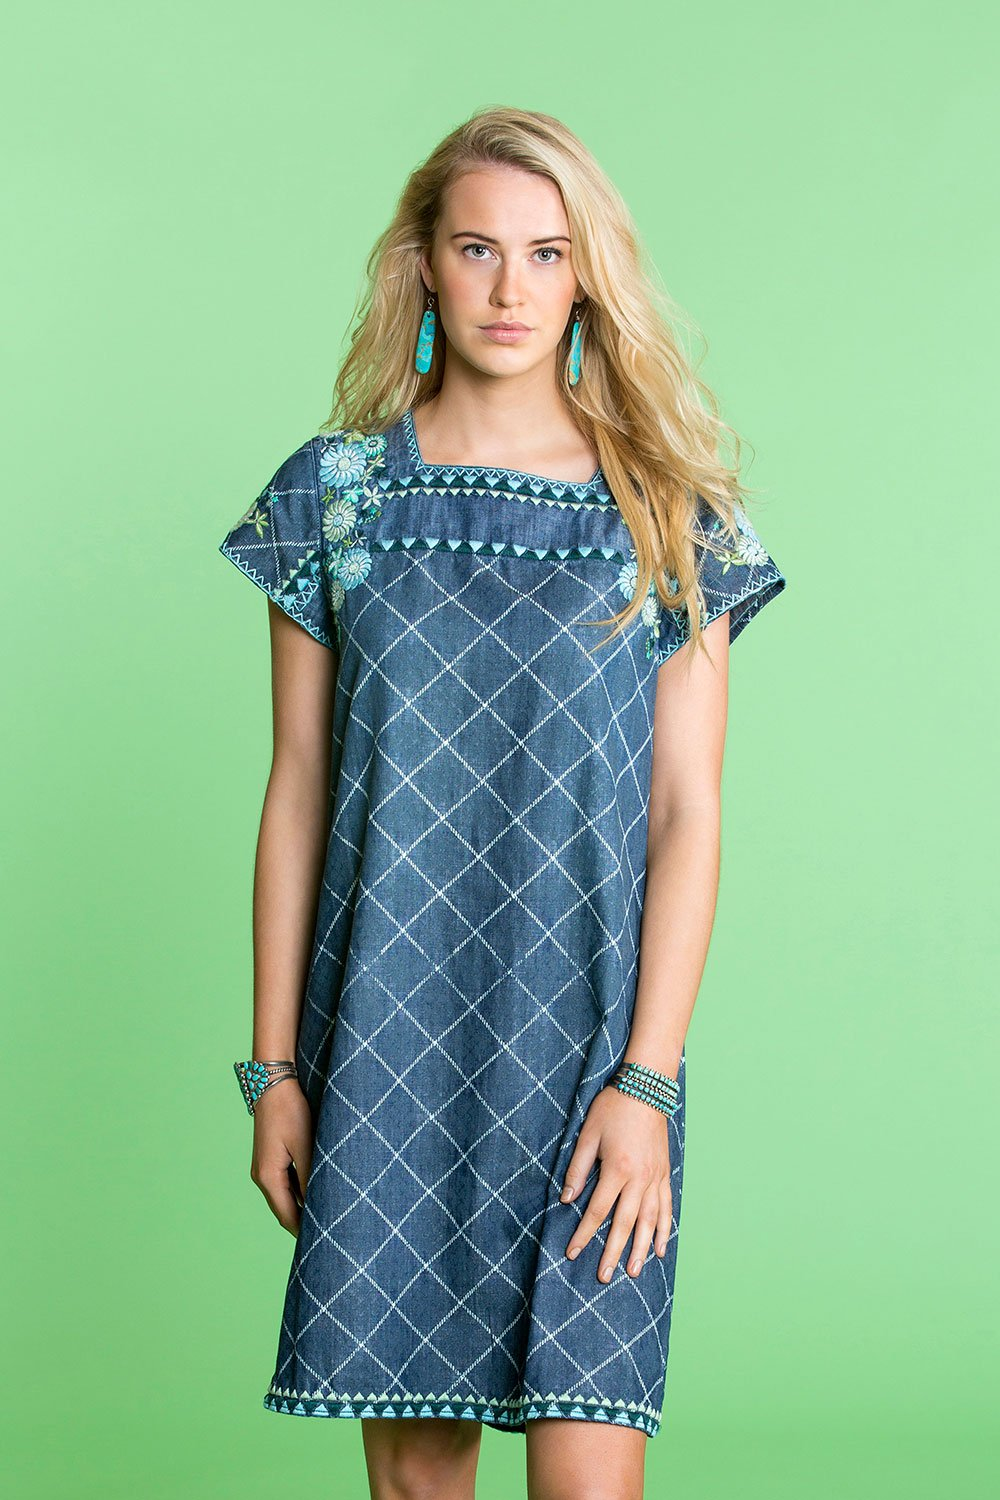 Spacely Sprockets Dress-Dresses-Branded Envy